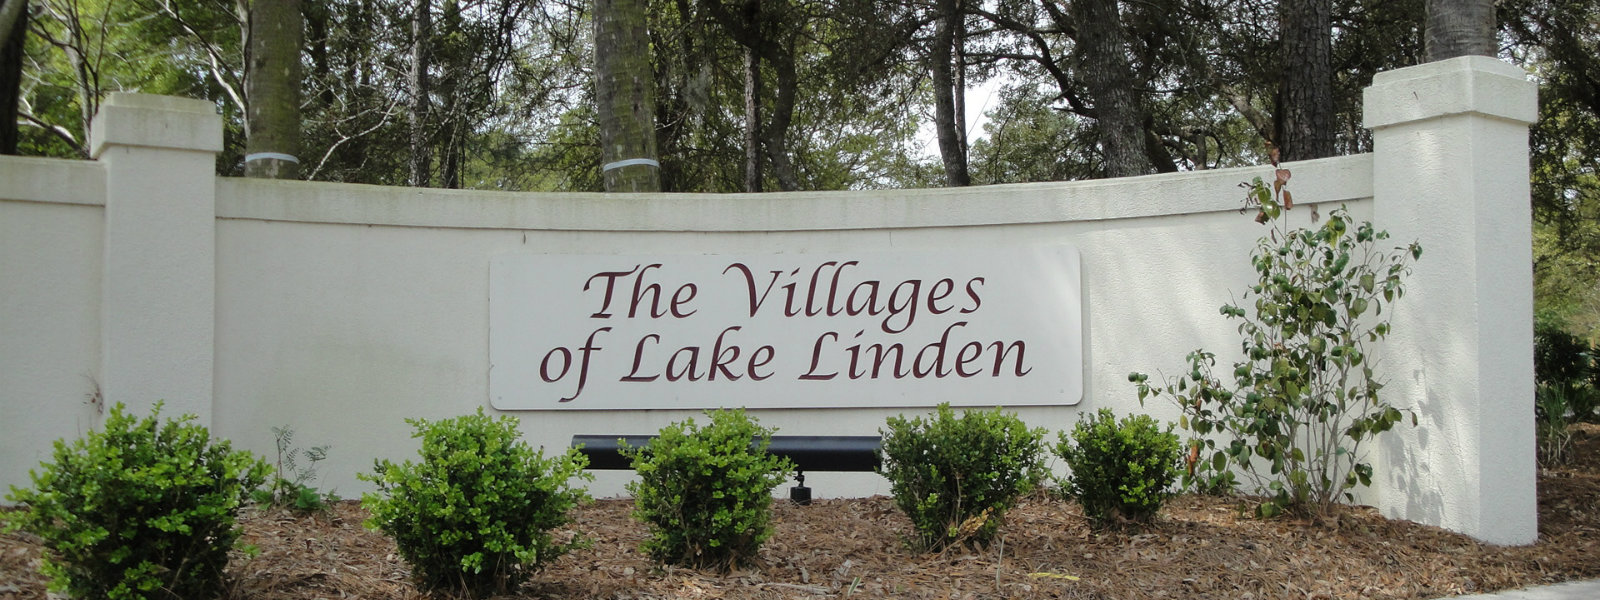 The-Villages-of-Lake-Linden-1600x600-Sign-2